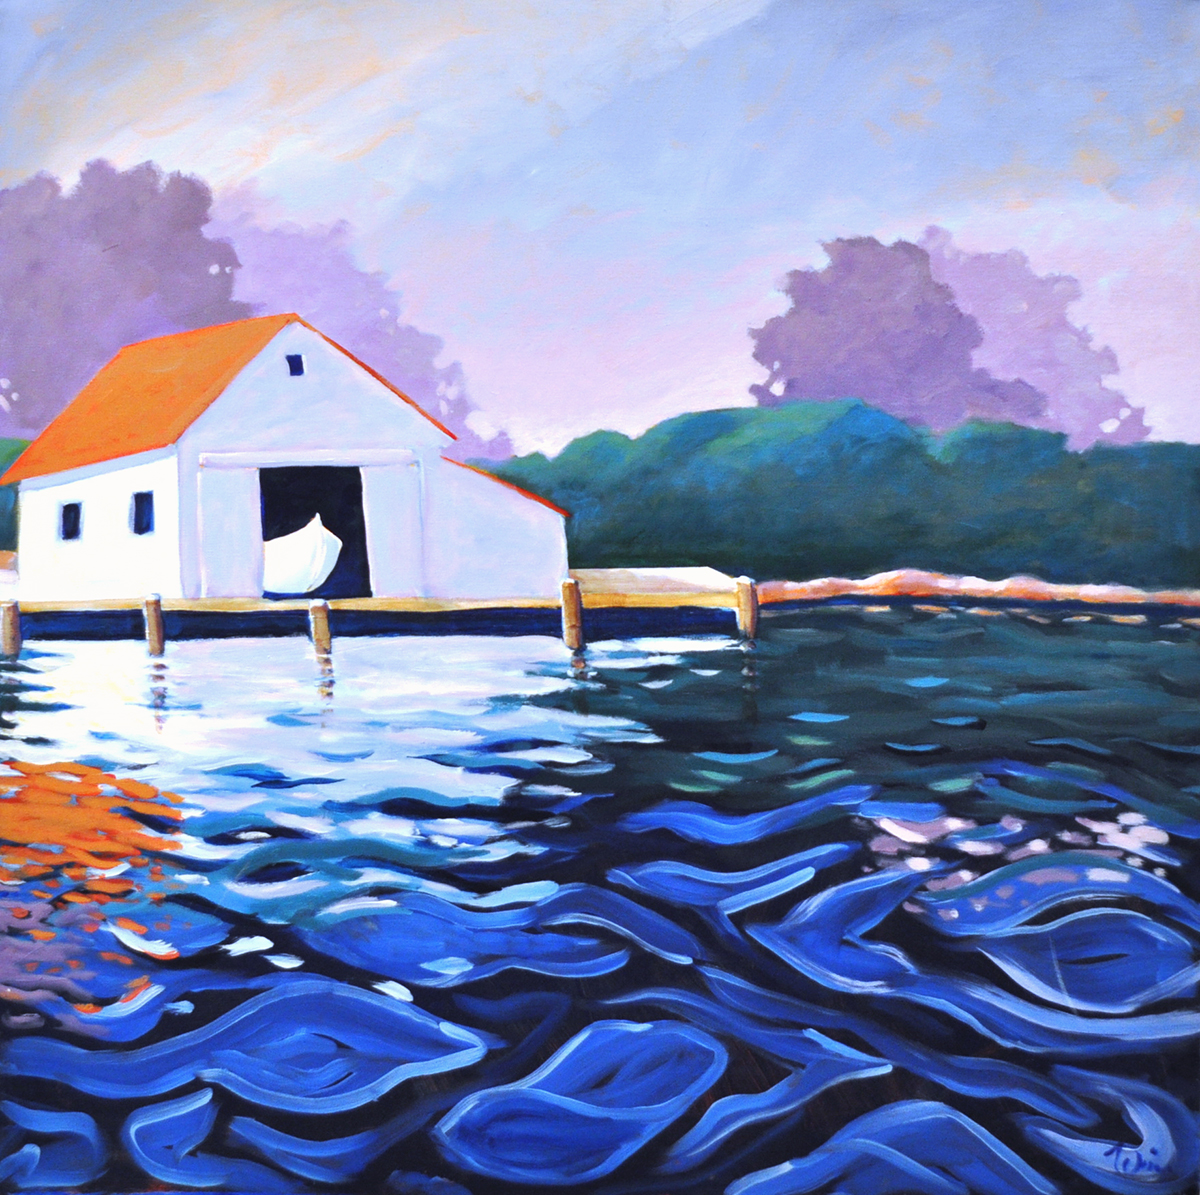 Maine Boat House,  2015 Acrylic on canvas 36 x 36 inches